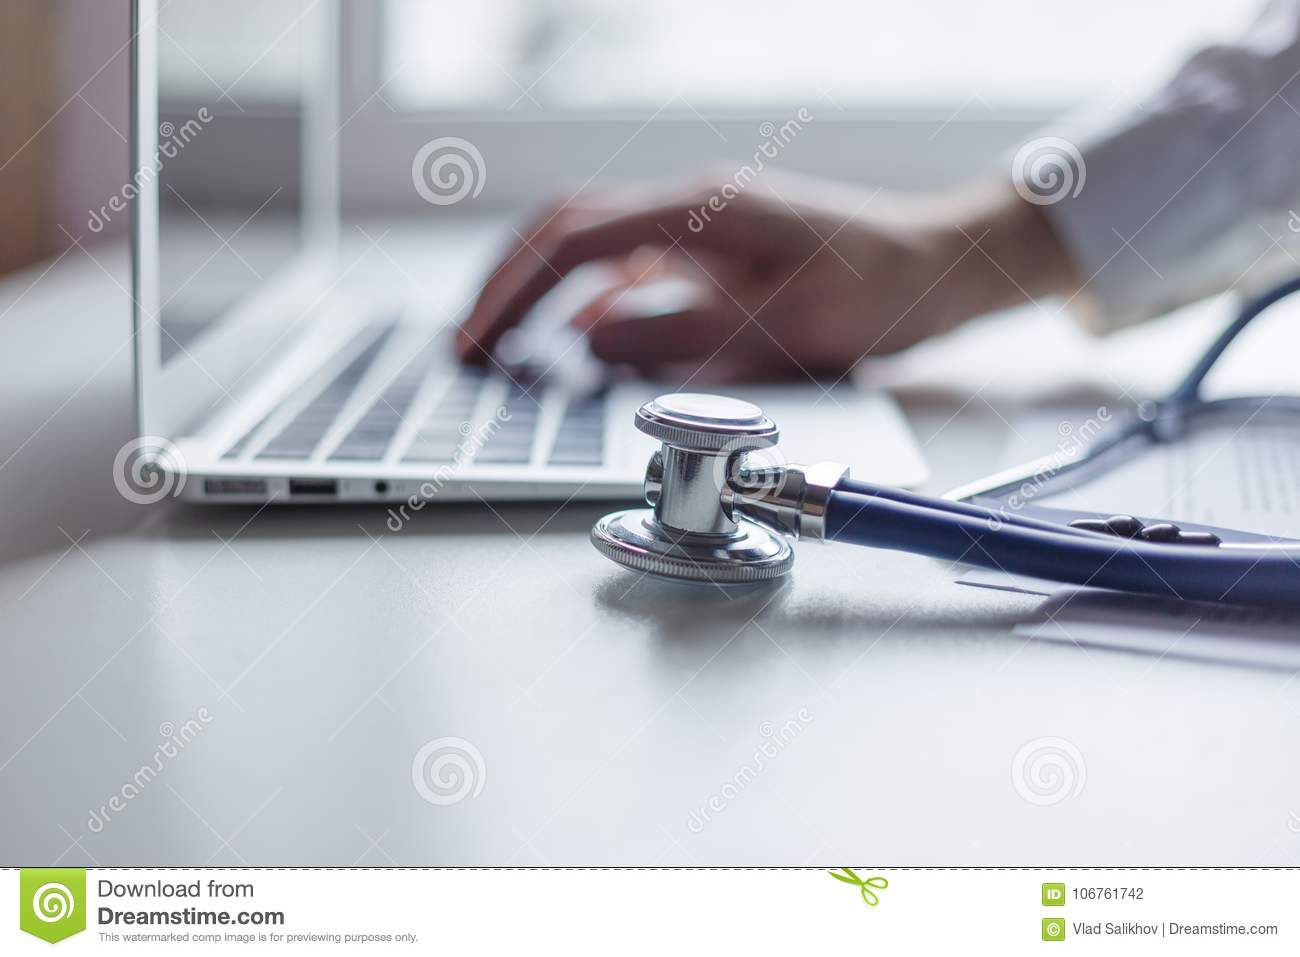 Doctor working with laptop computer in medical workspace office. Focus on stethoscope